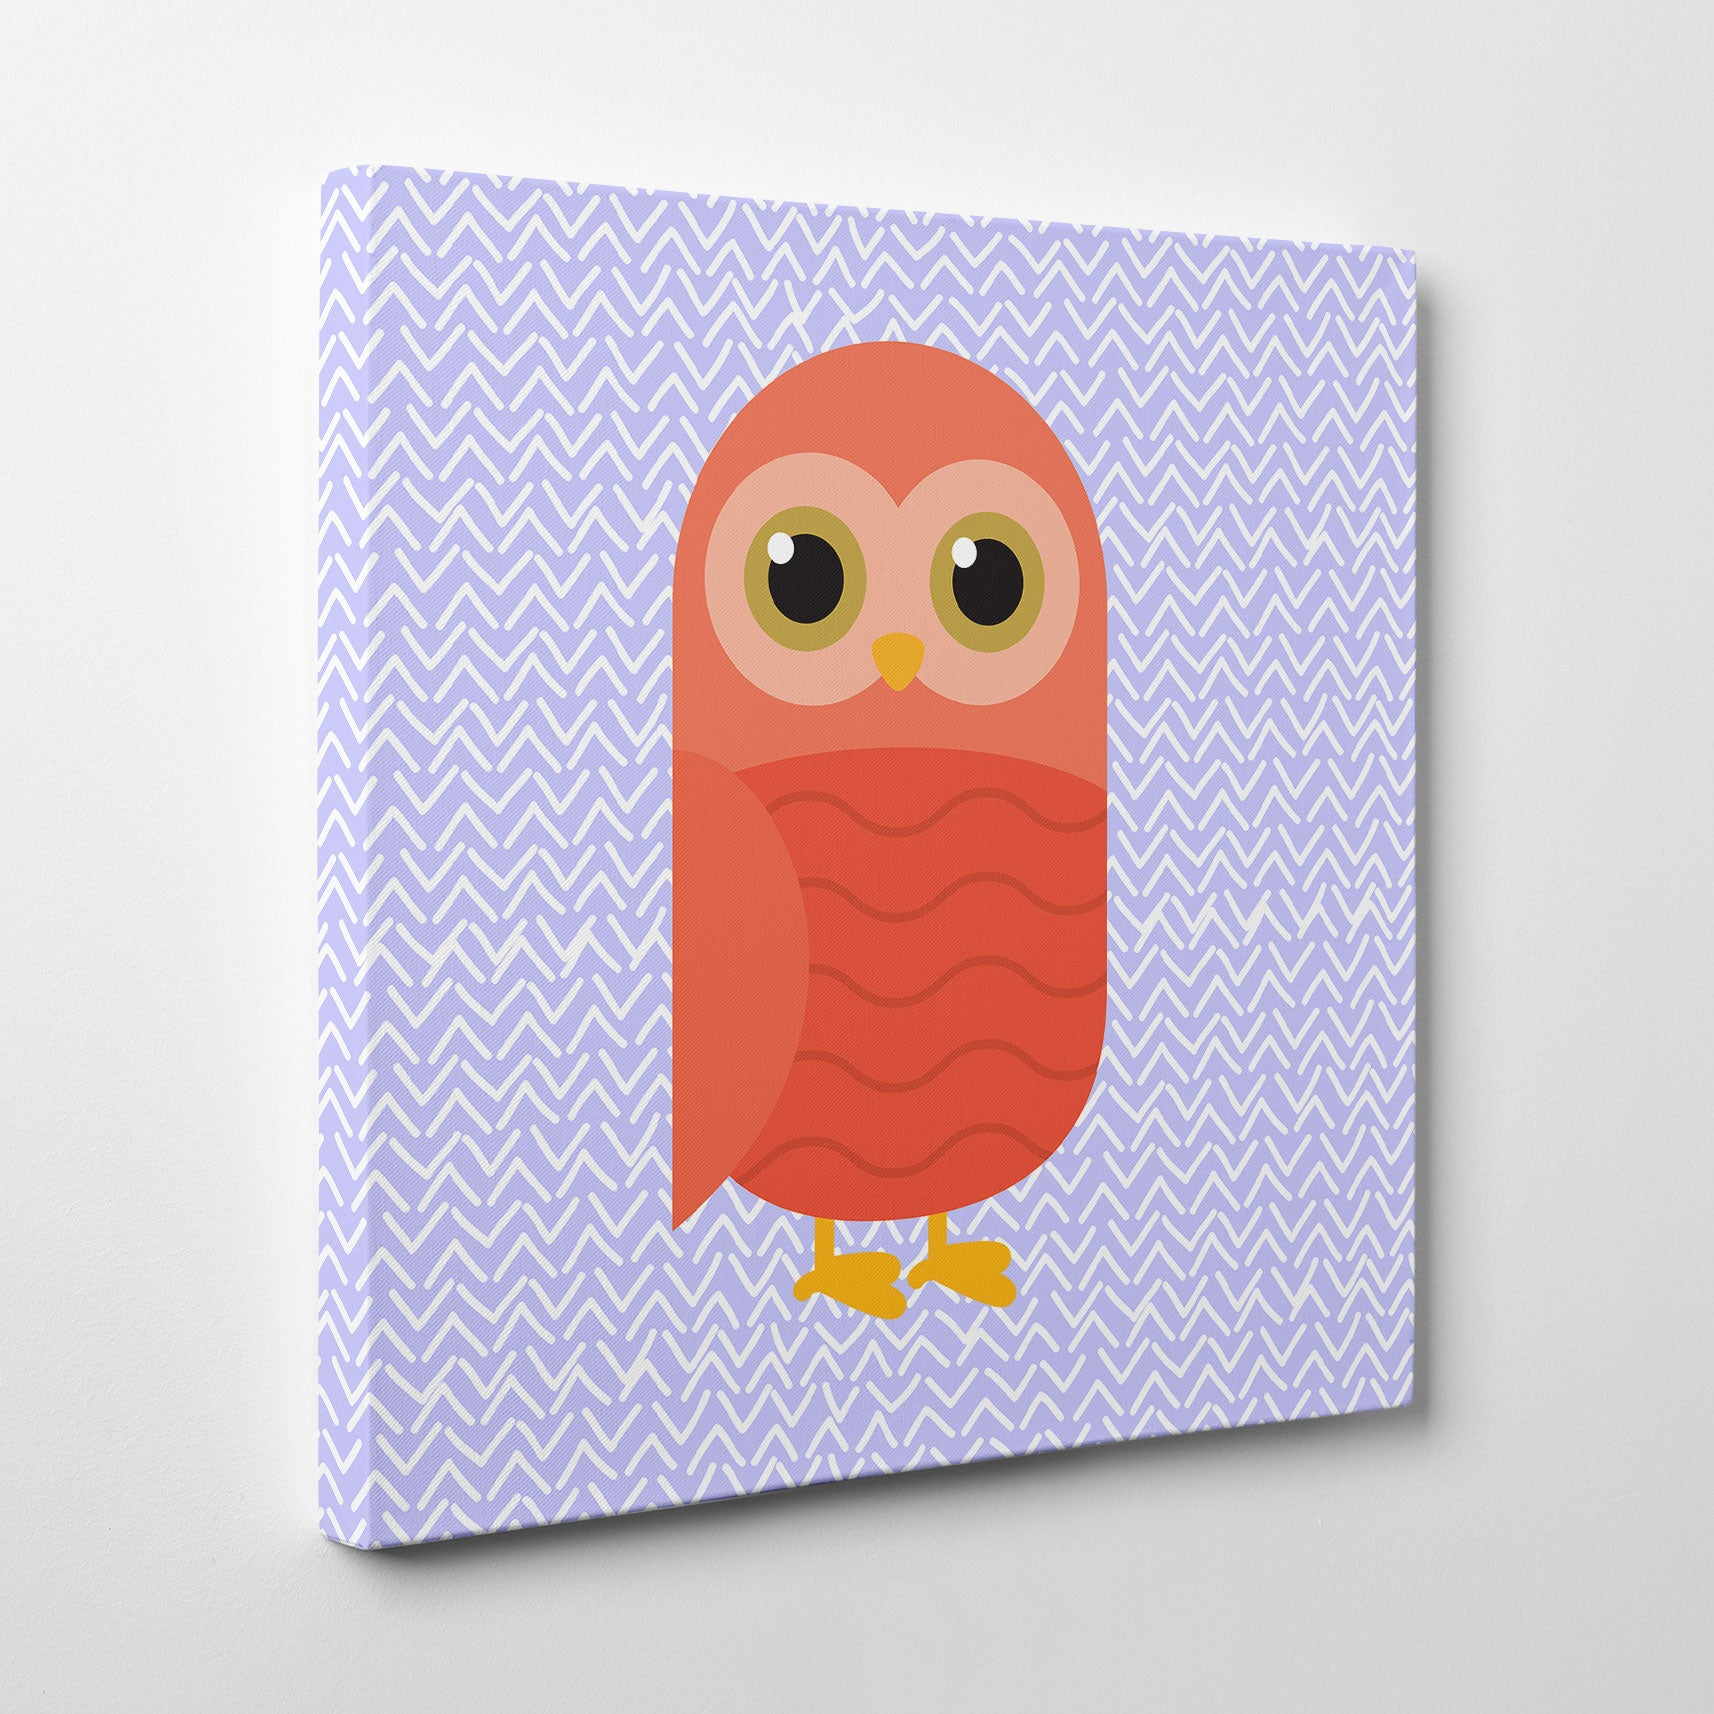 Canvas print with a red owl on purple patterned background - side view